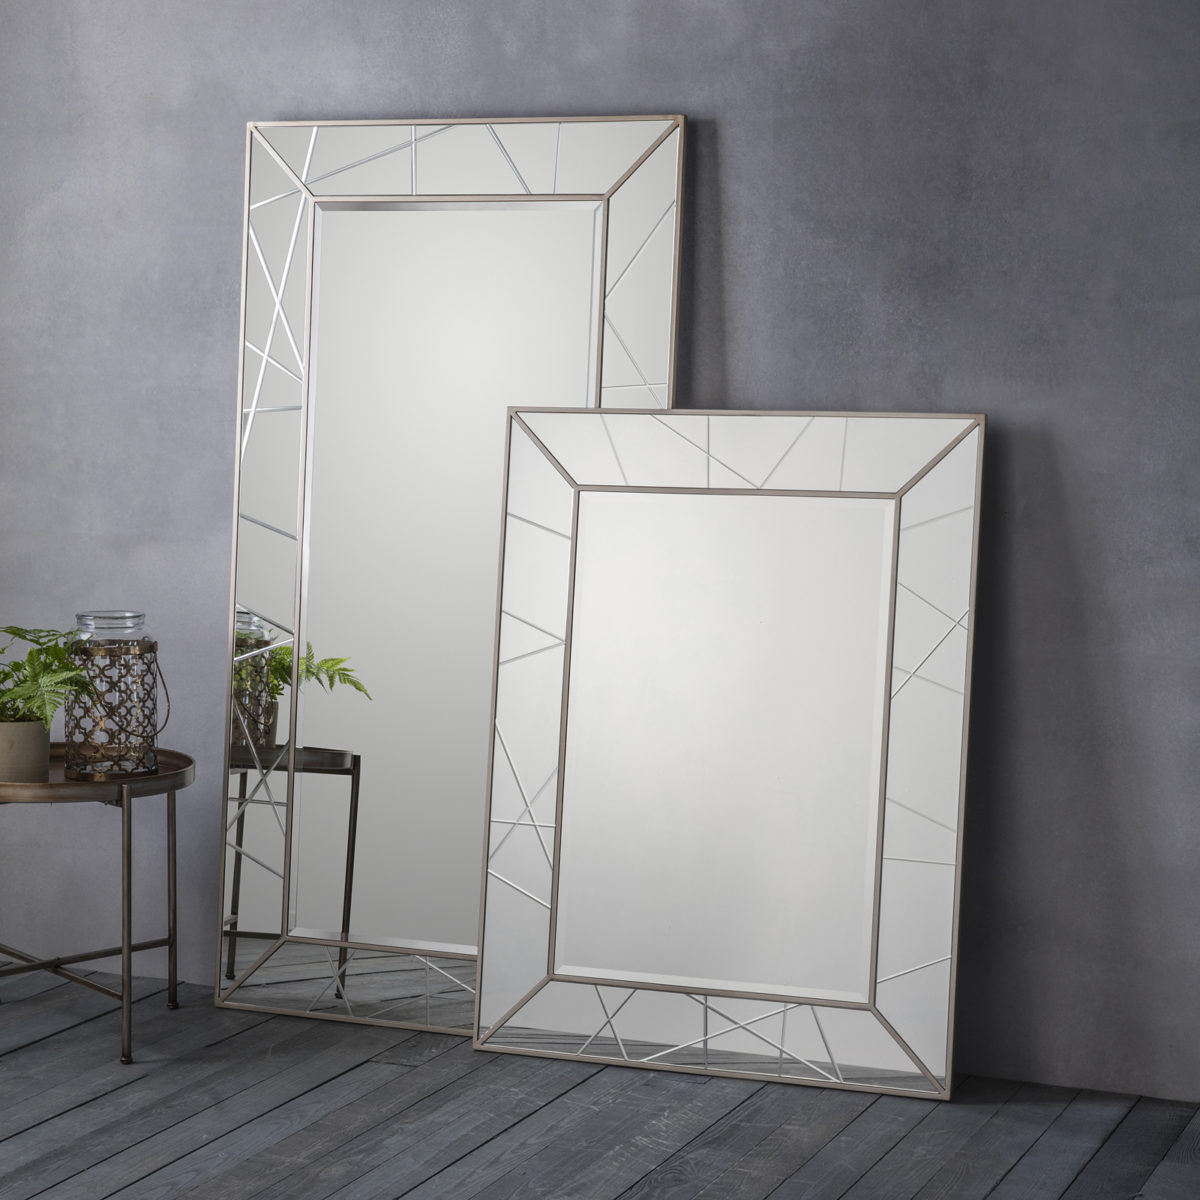 Preferred All Glass Geometric Wall & Floor Standing Mirrors Inside Floor Wall Mirrors (View 14 of 20)